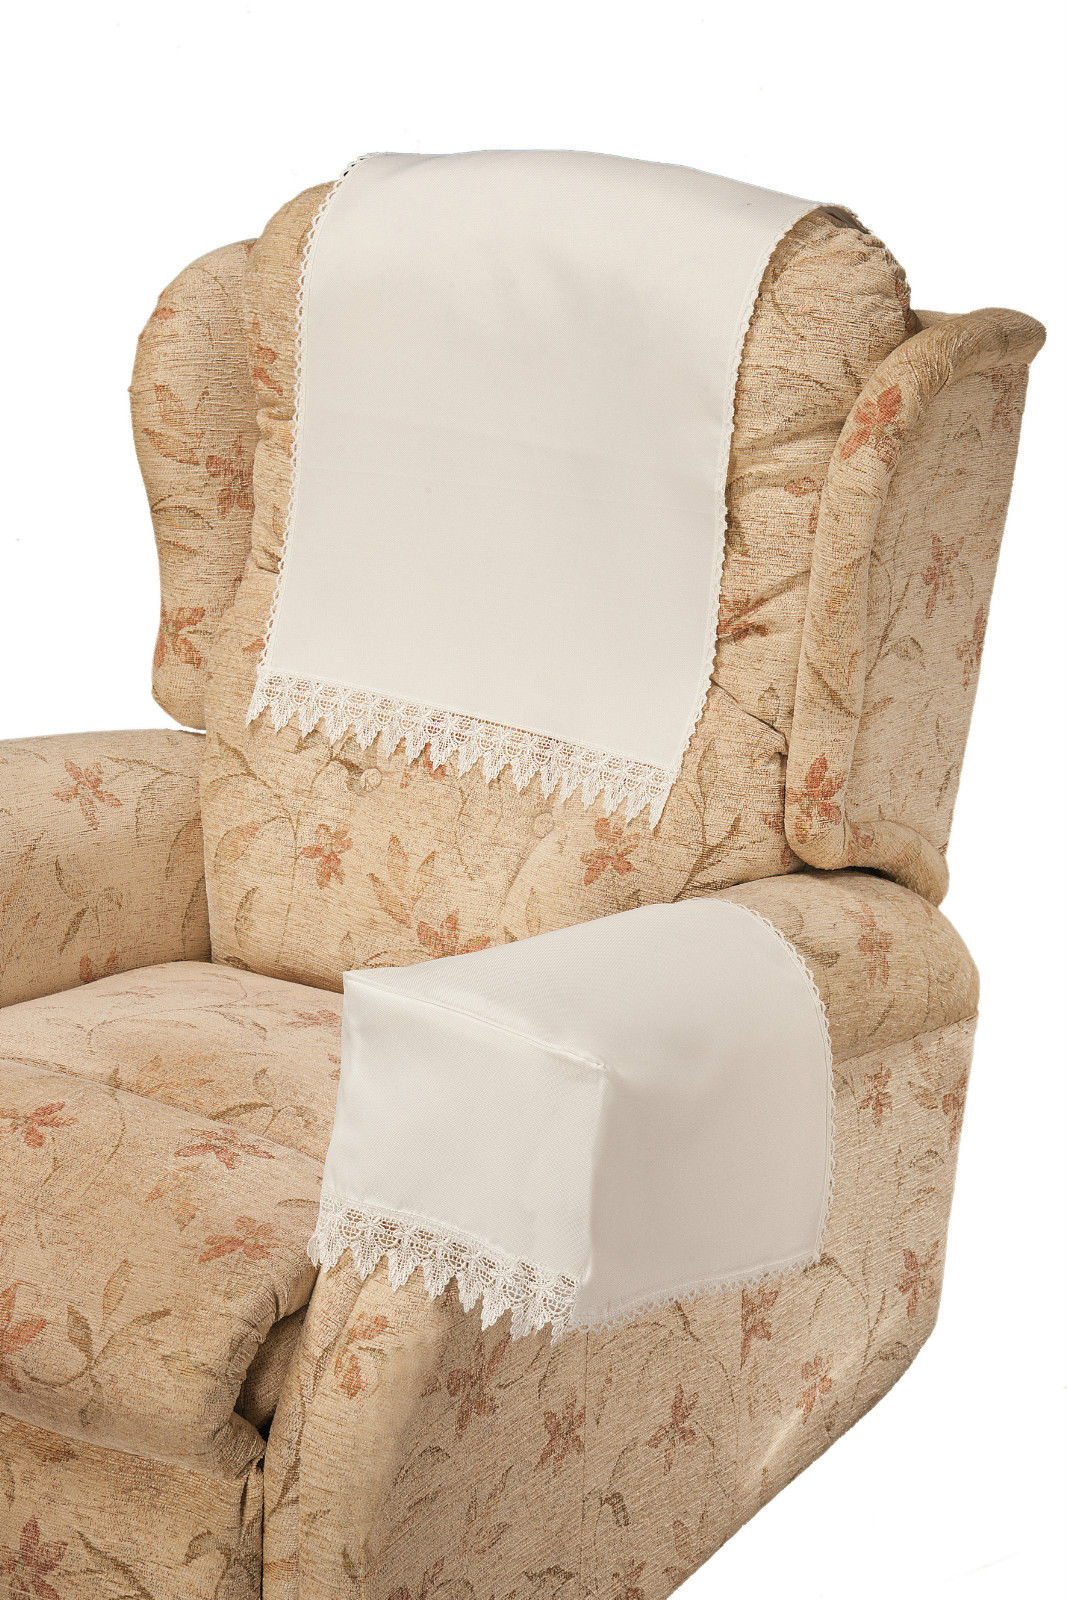 leather sofa arm caps uk ergonomic comet white chair covers by easycare tablecloths